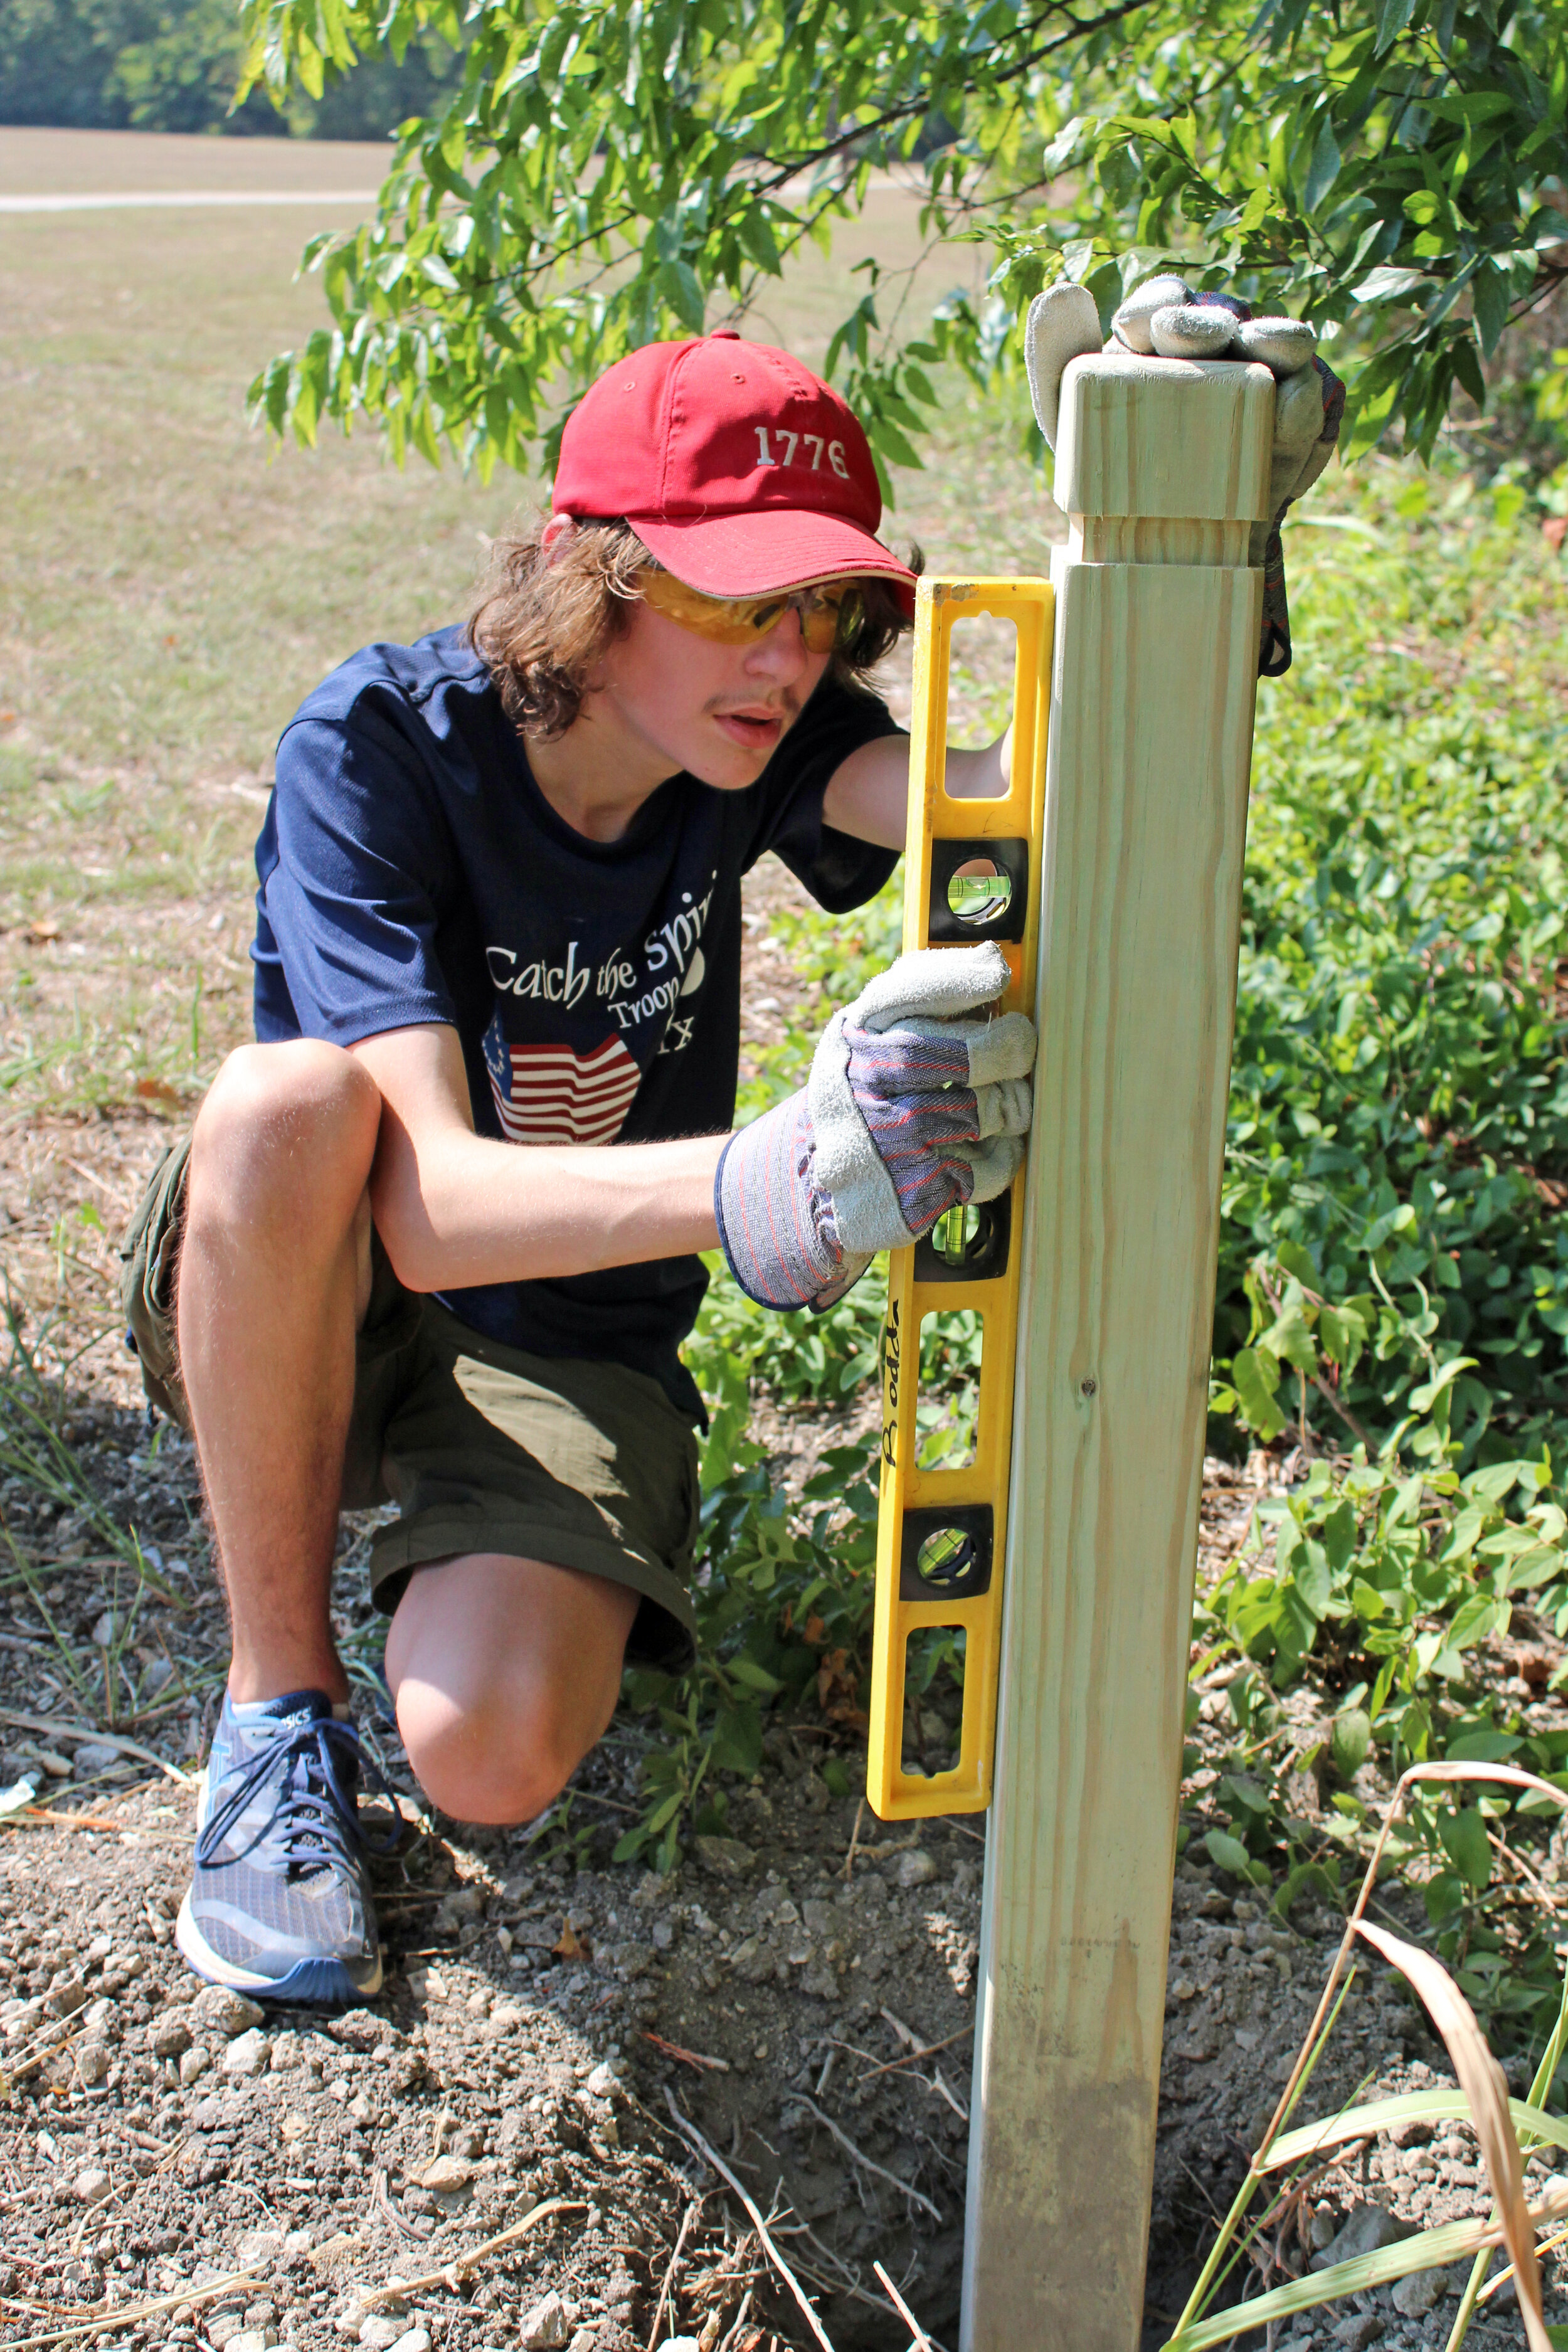 Arik Rodda checking the level of a trail marker located at one of the trailheads.